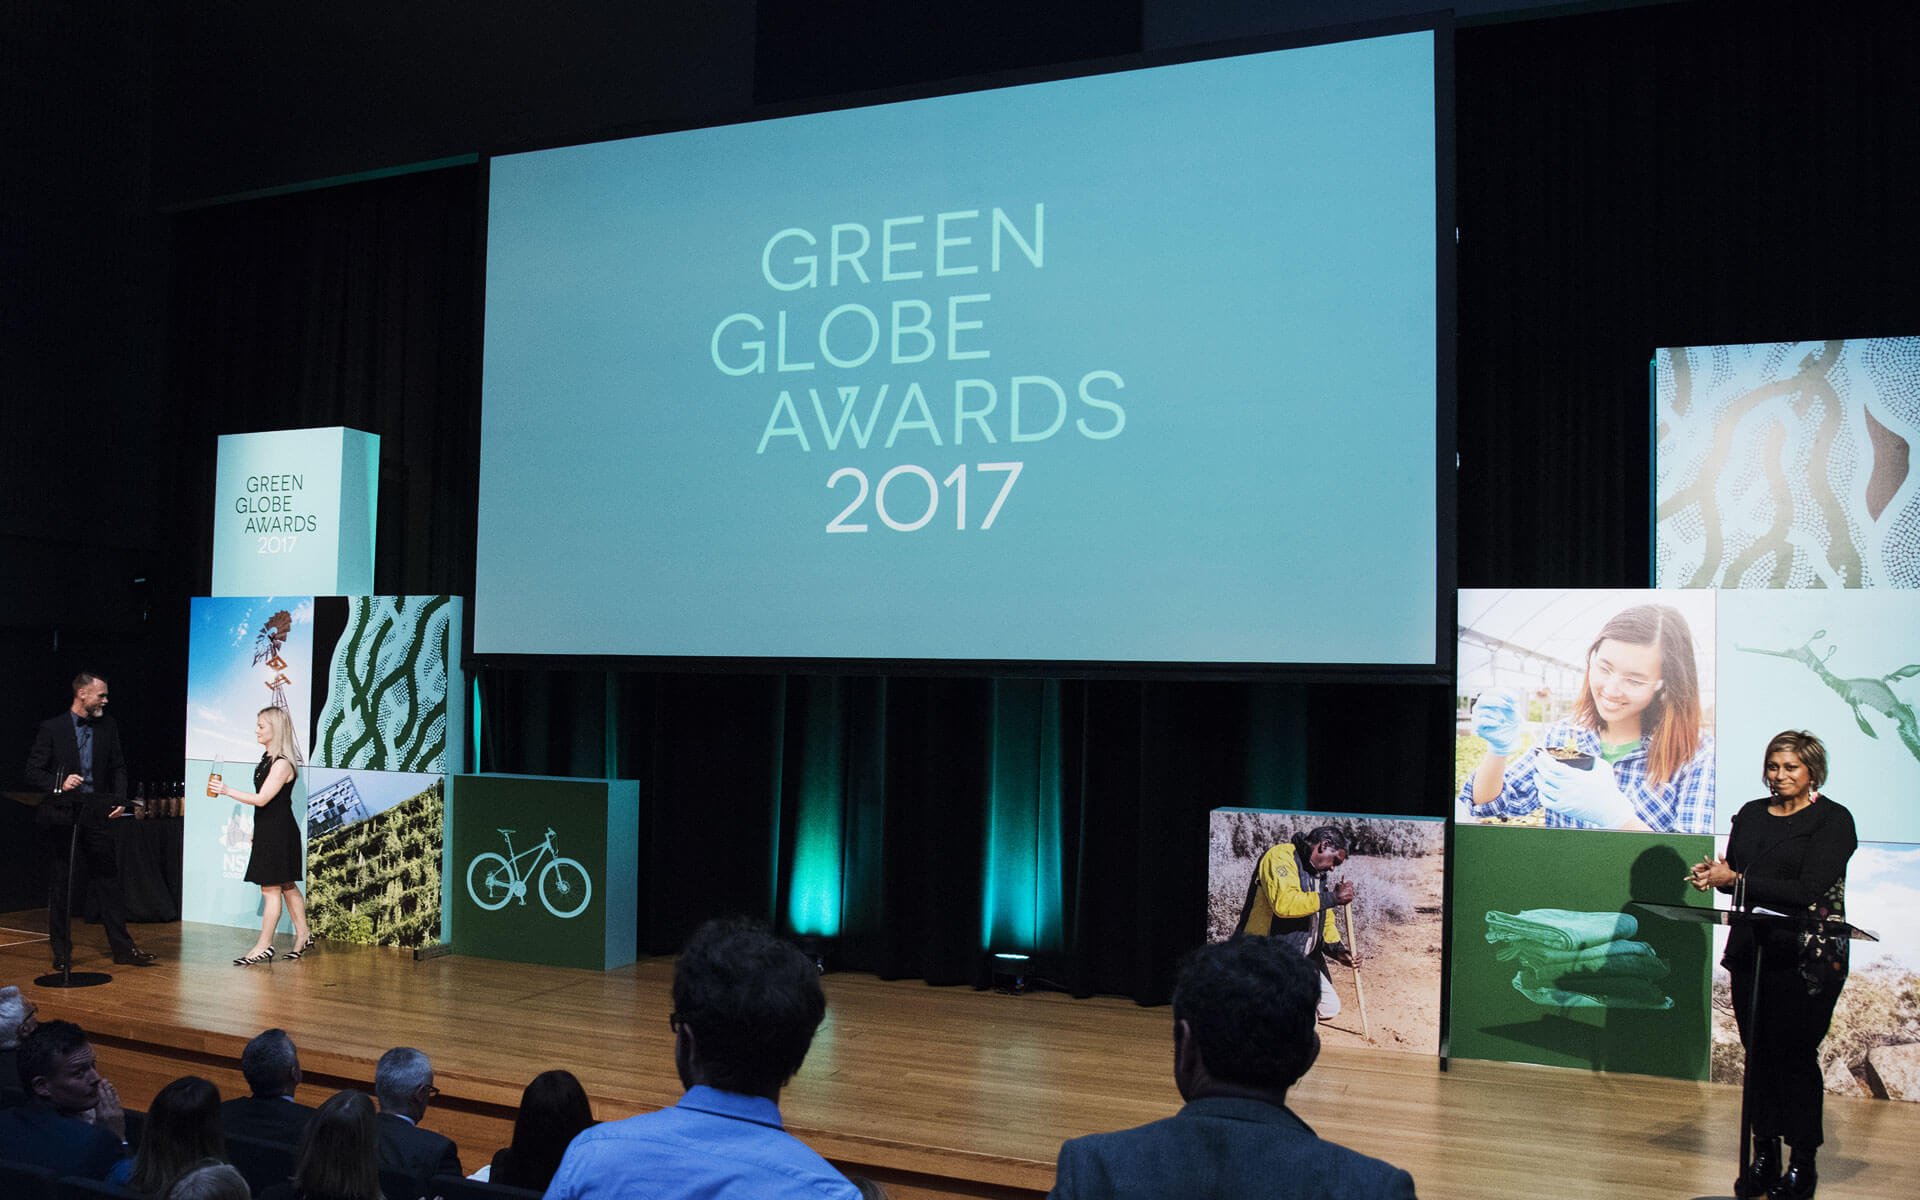 The Green Globe Awards rebrand, stage design